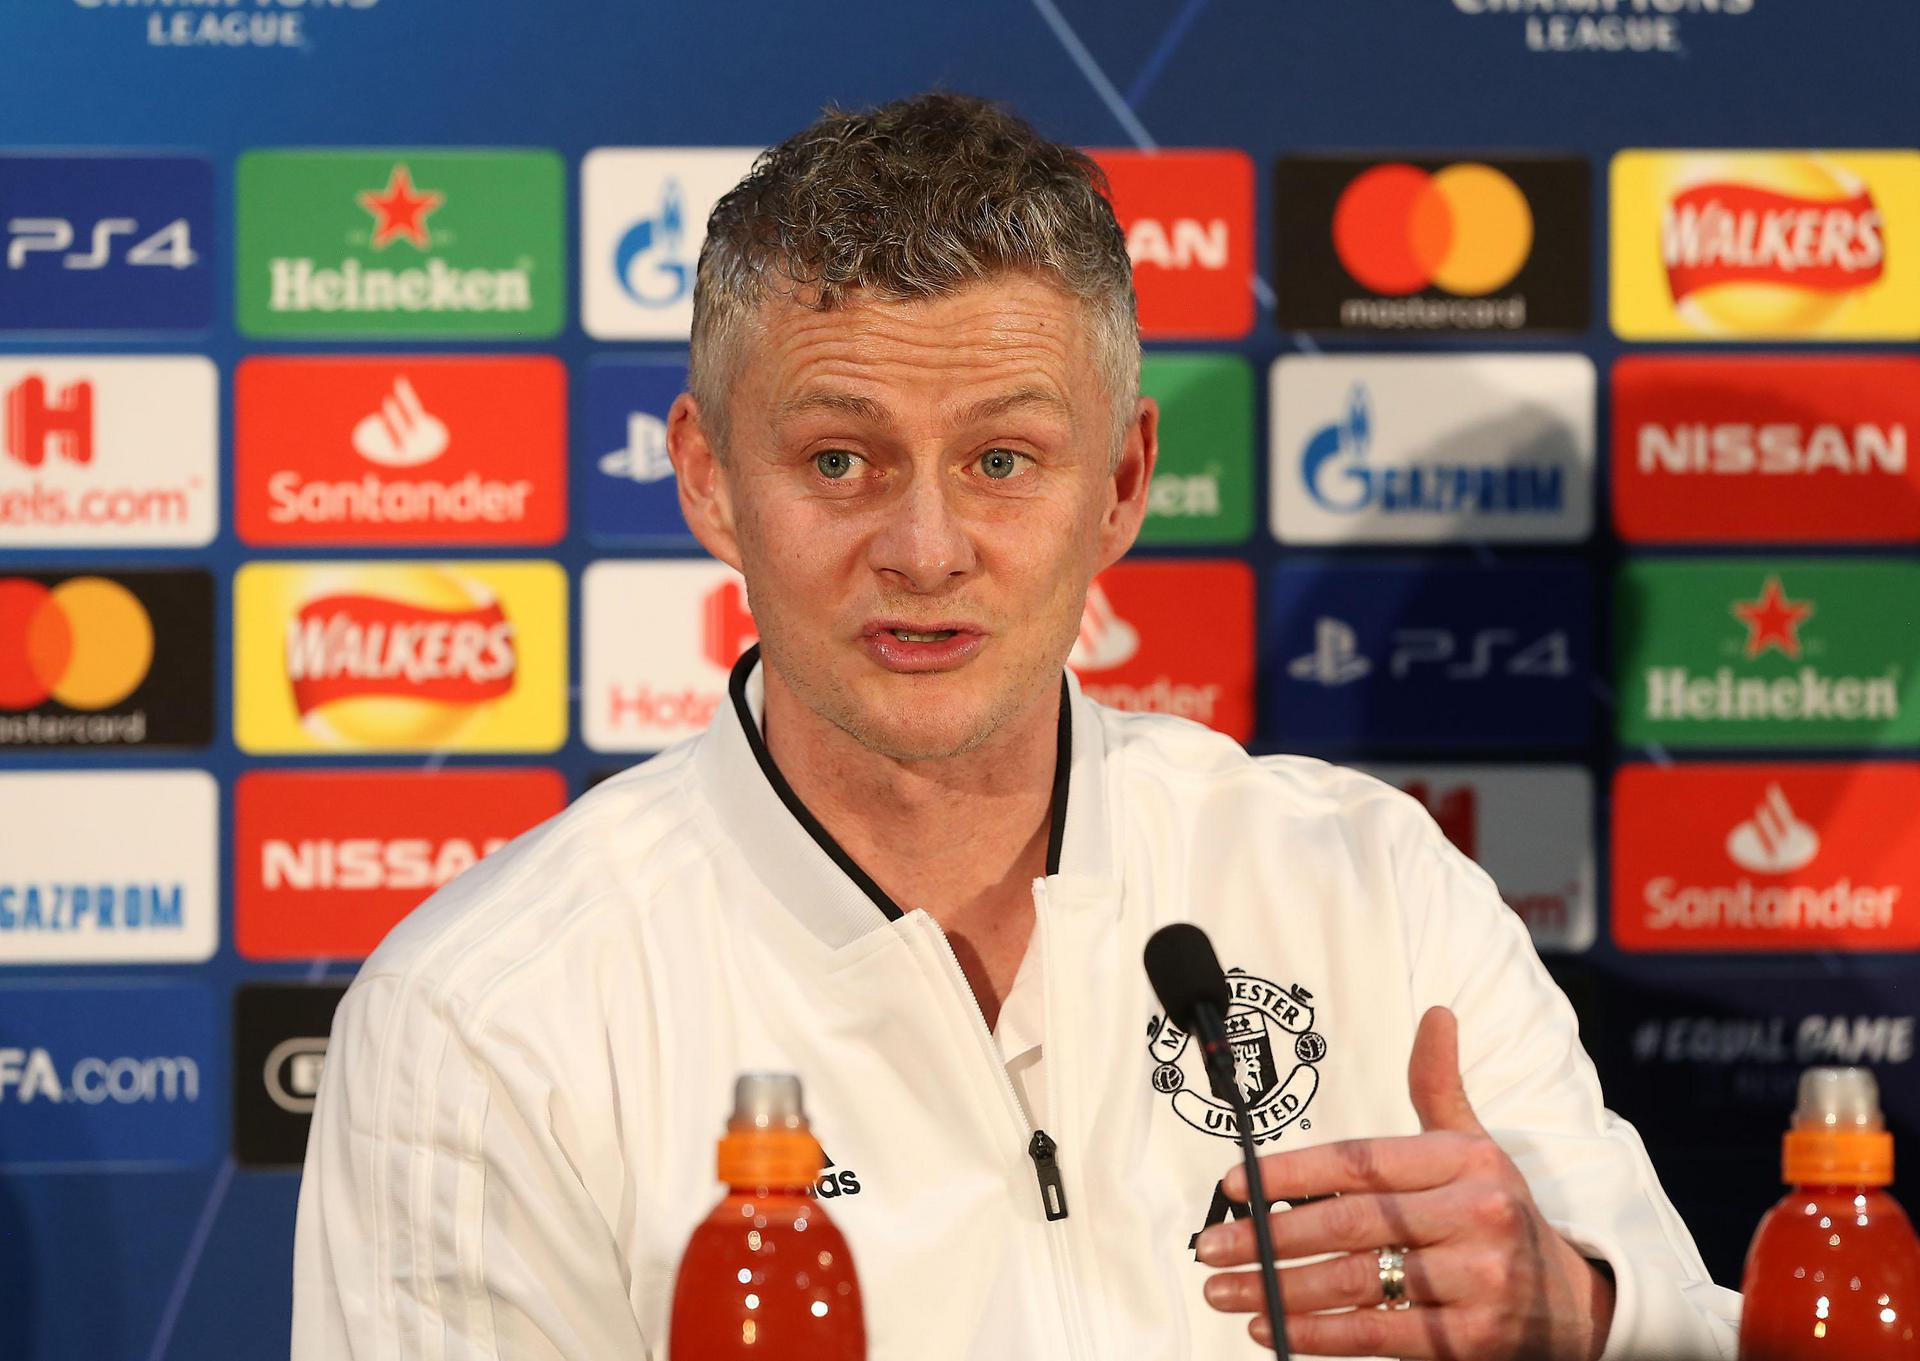 Ole Gunnar Solskjaer speaks at a pre-match press conference